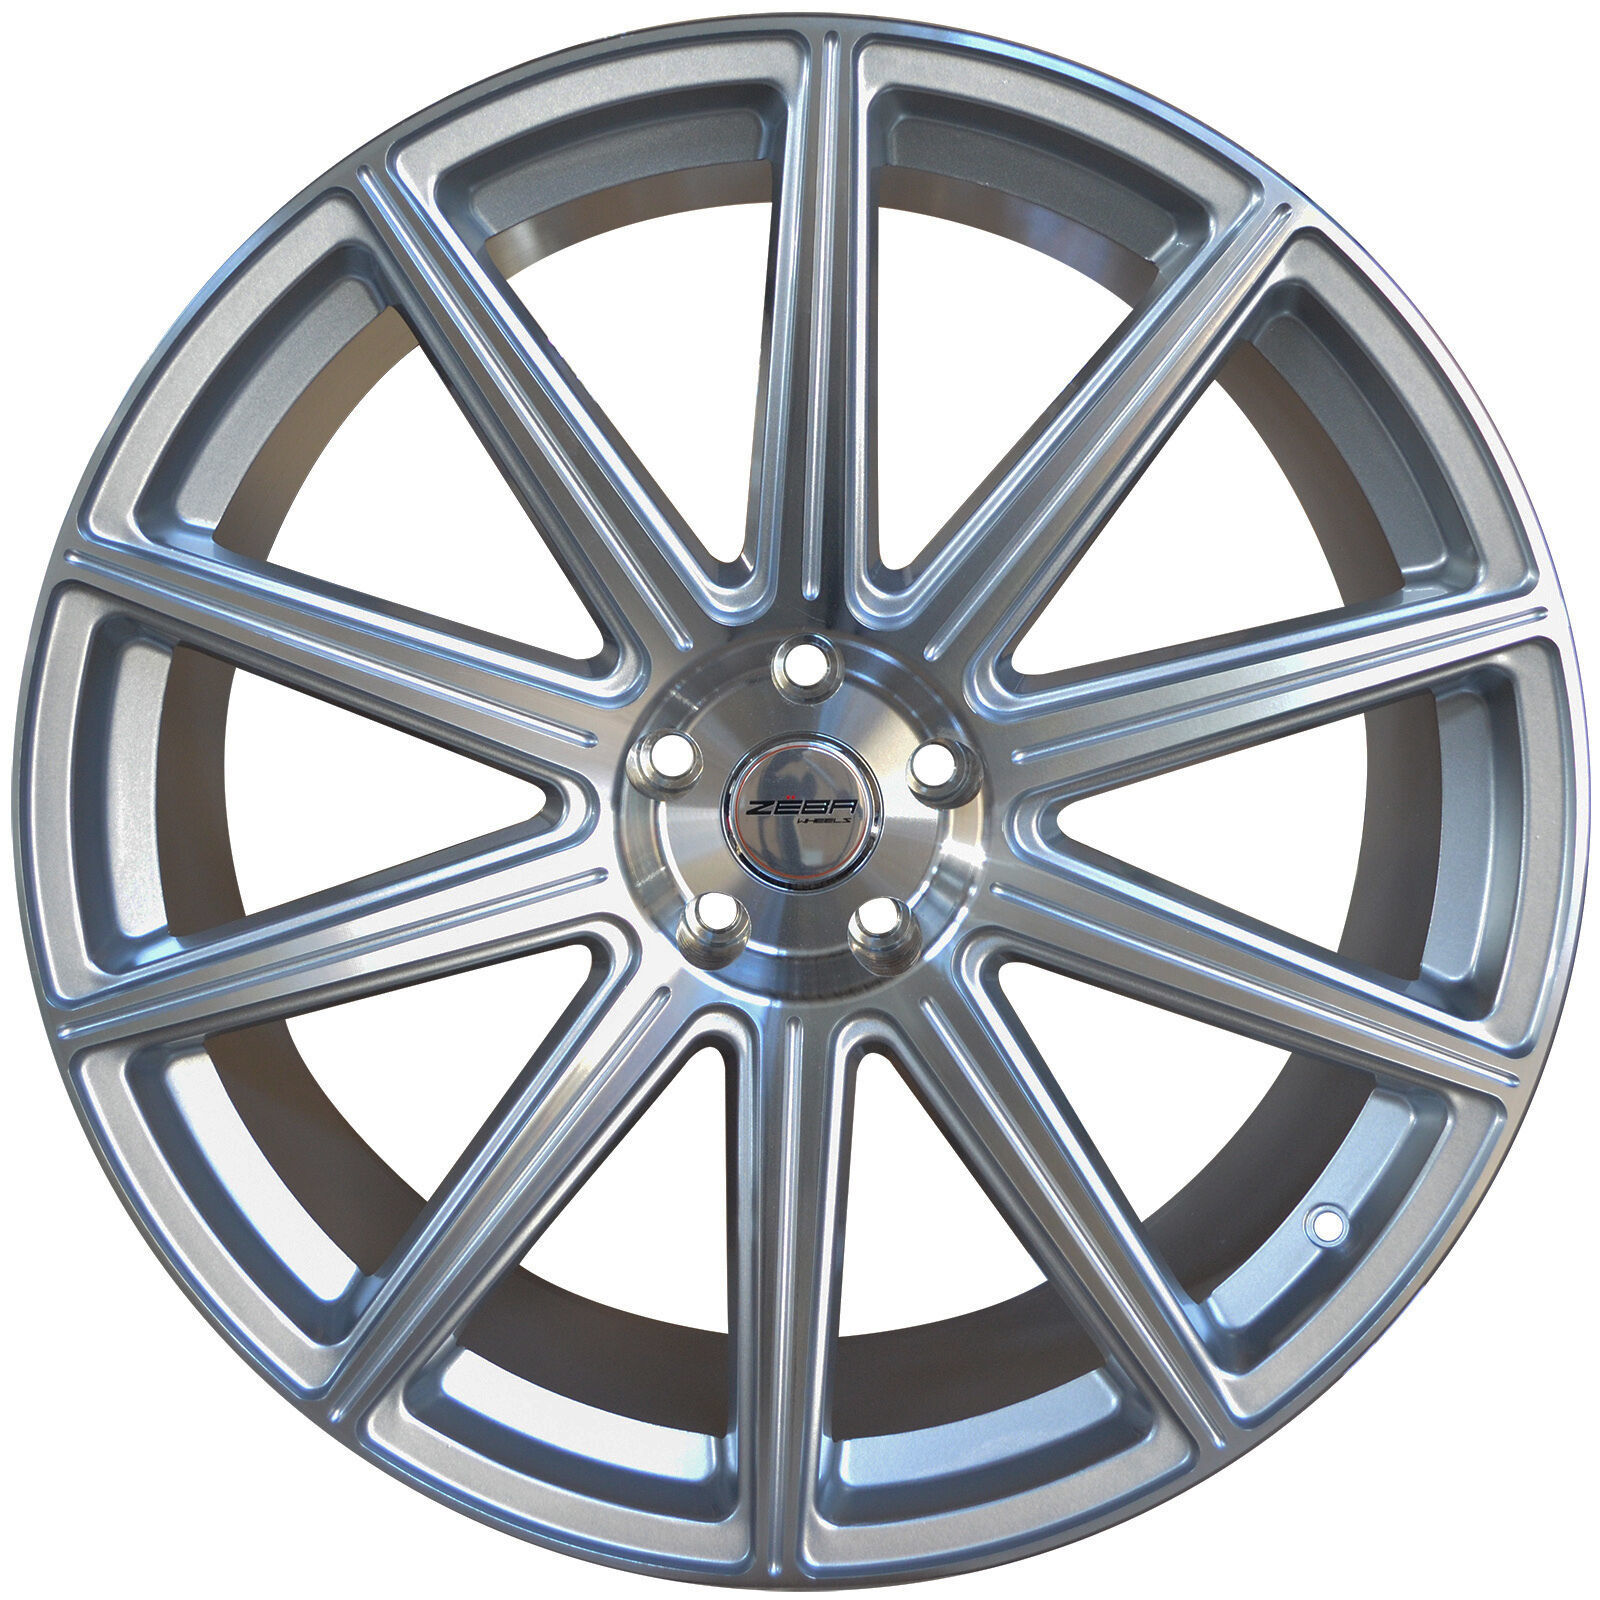 4 GWG WHEELS 20 inch STAGG Silver MOD Rims FORD MUSTANG ECOBOOST I4 W/PERF 15-18 - $799.99